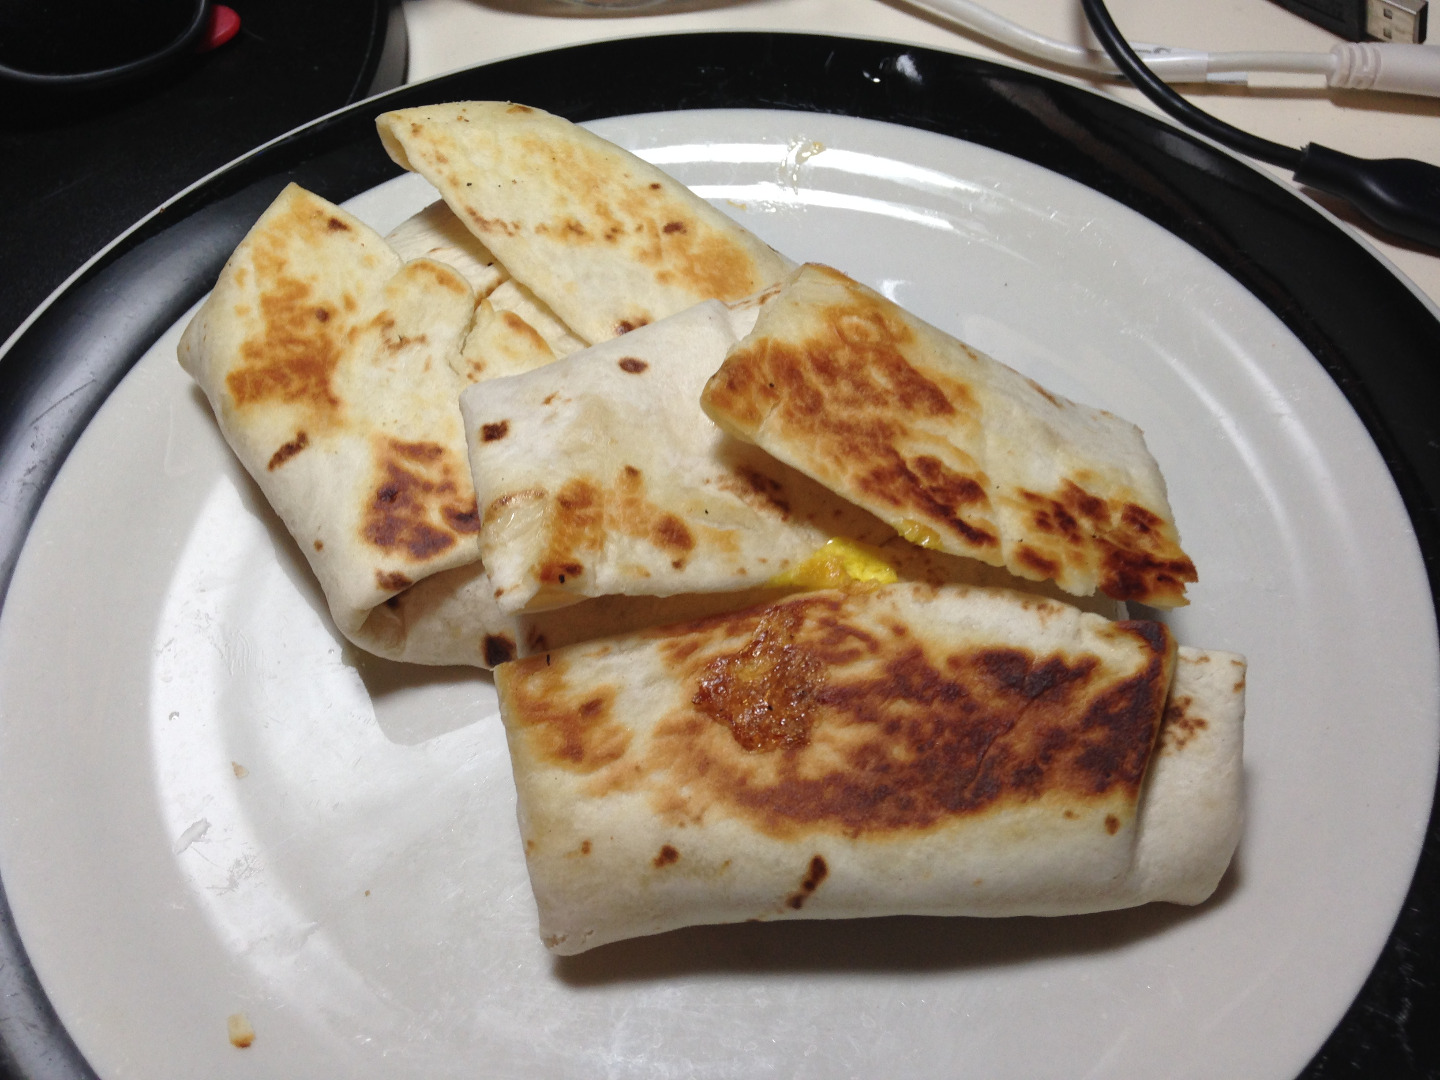 Picture of Peanut Butter, Jelly, and Egg Breakfast Wrap